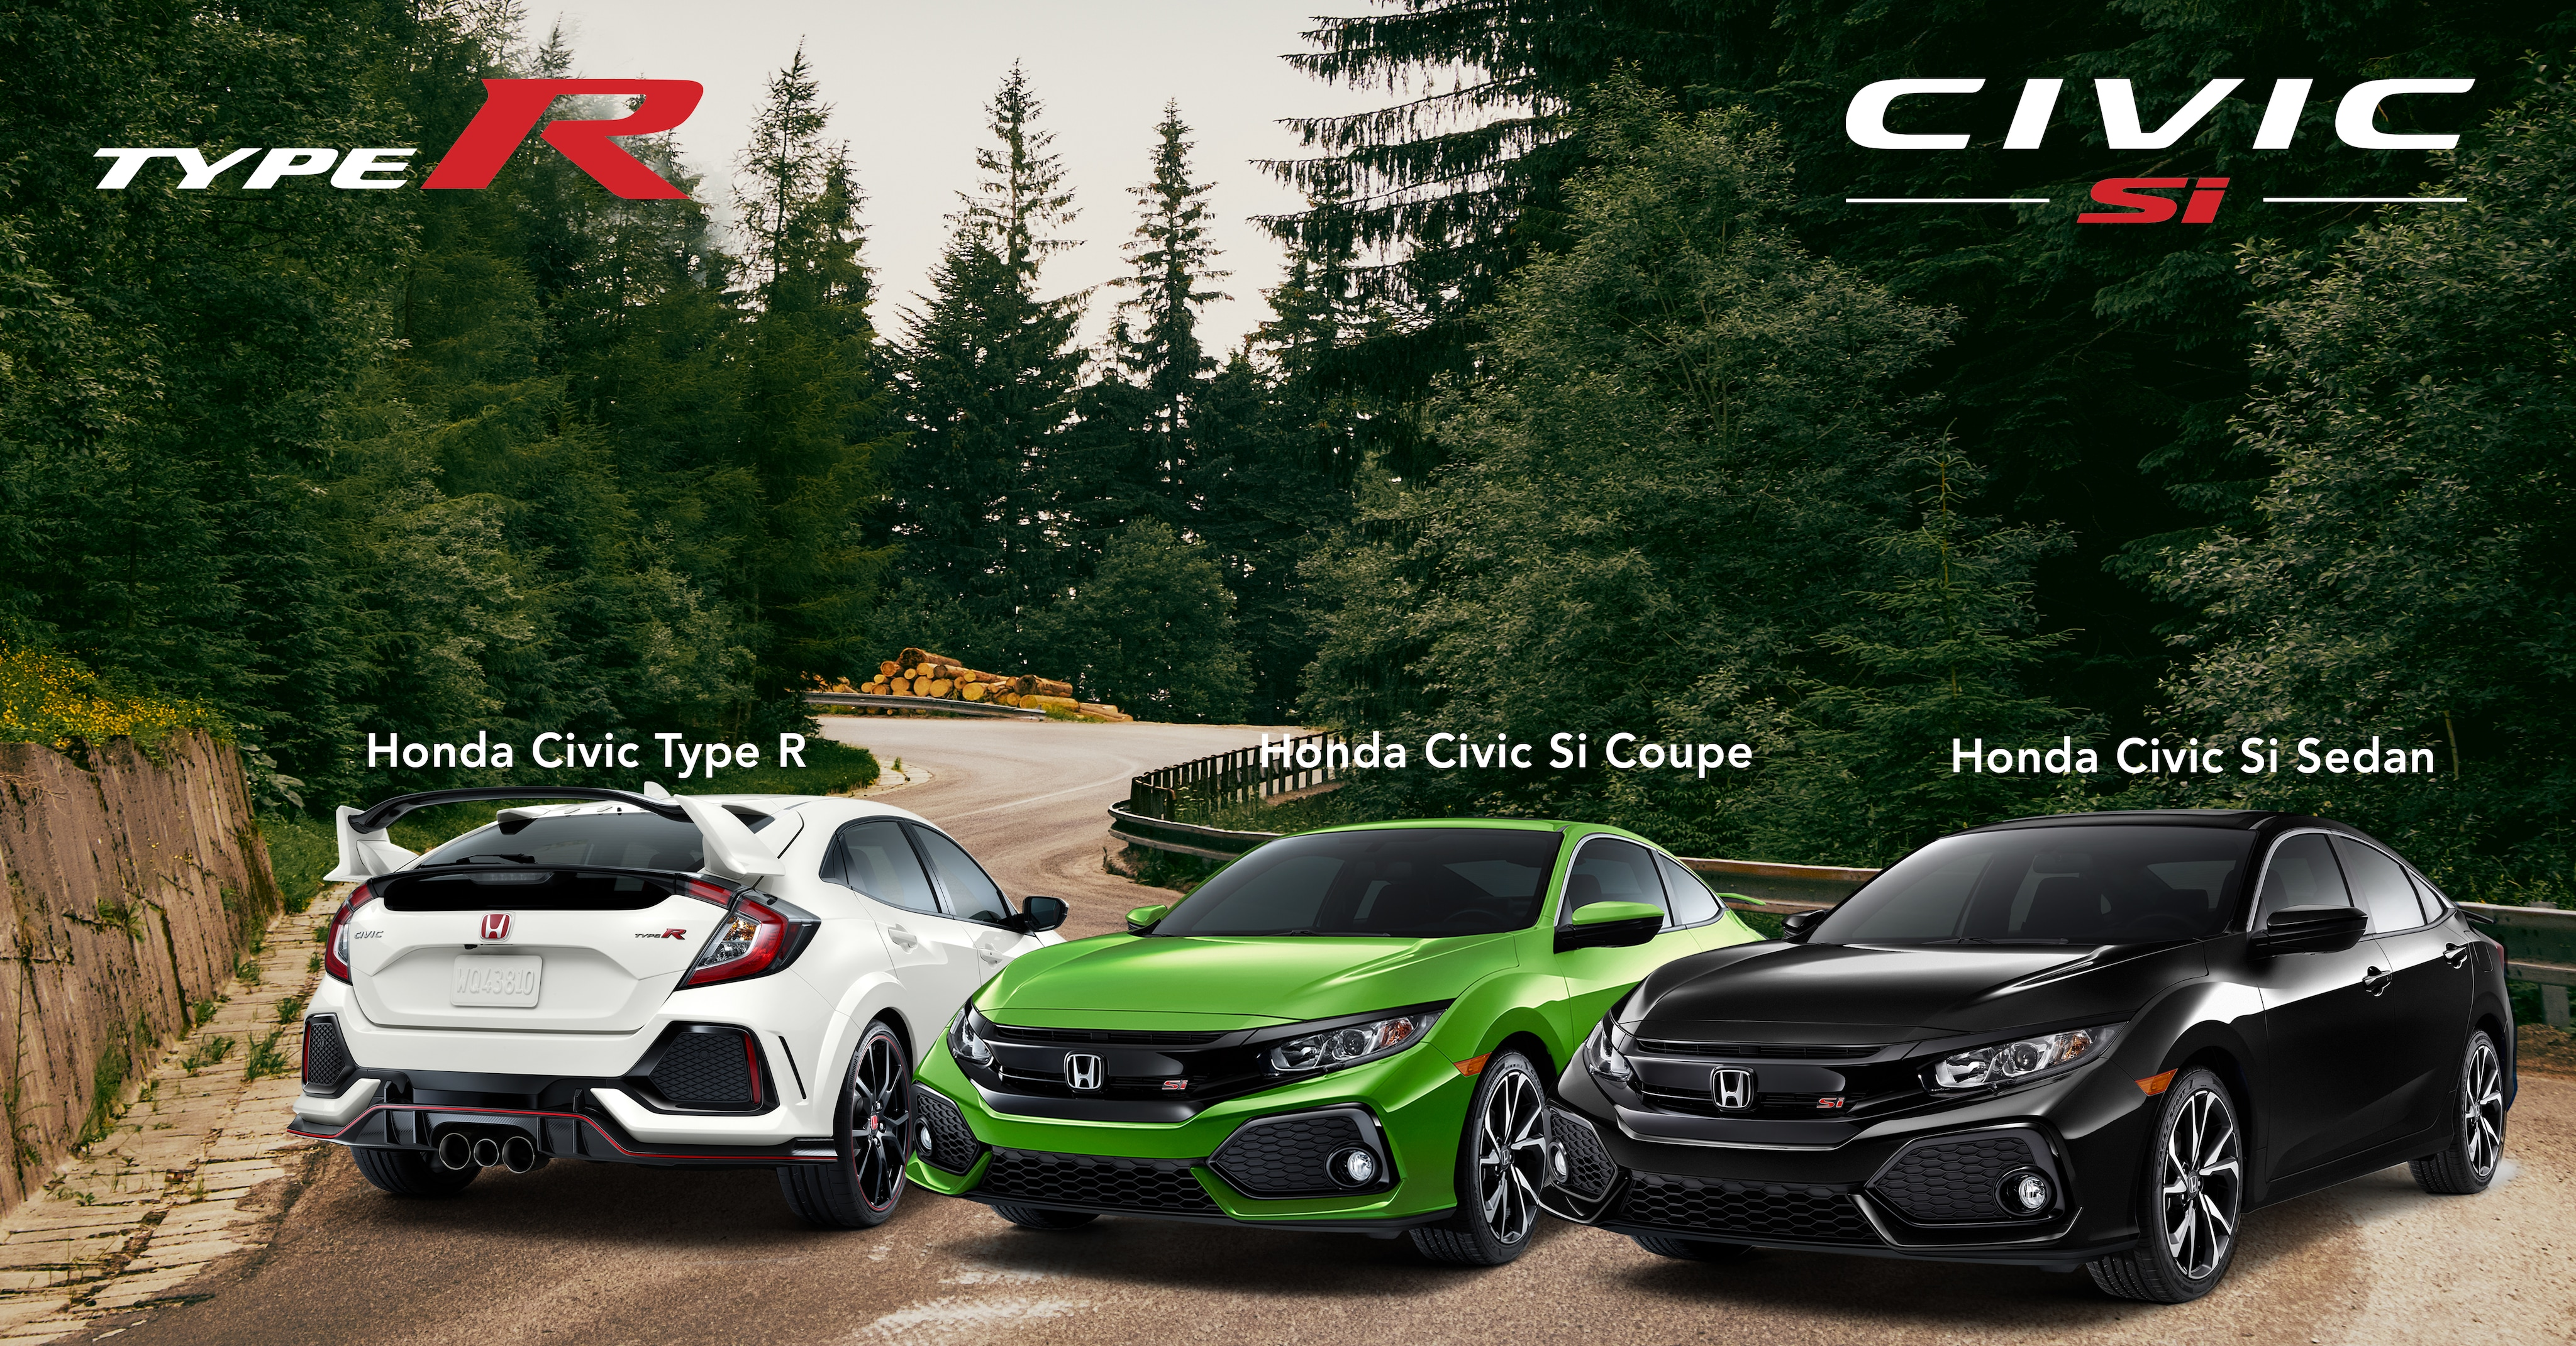 Lineup of the 2019 Civic Performance models on a scenic wooded road